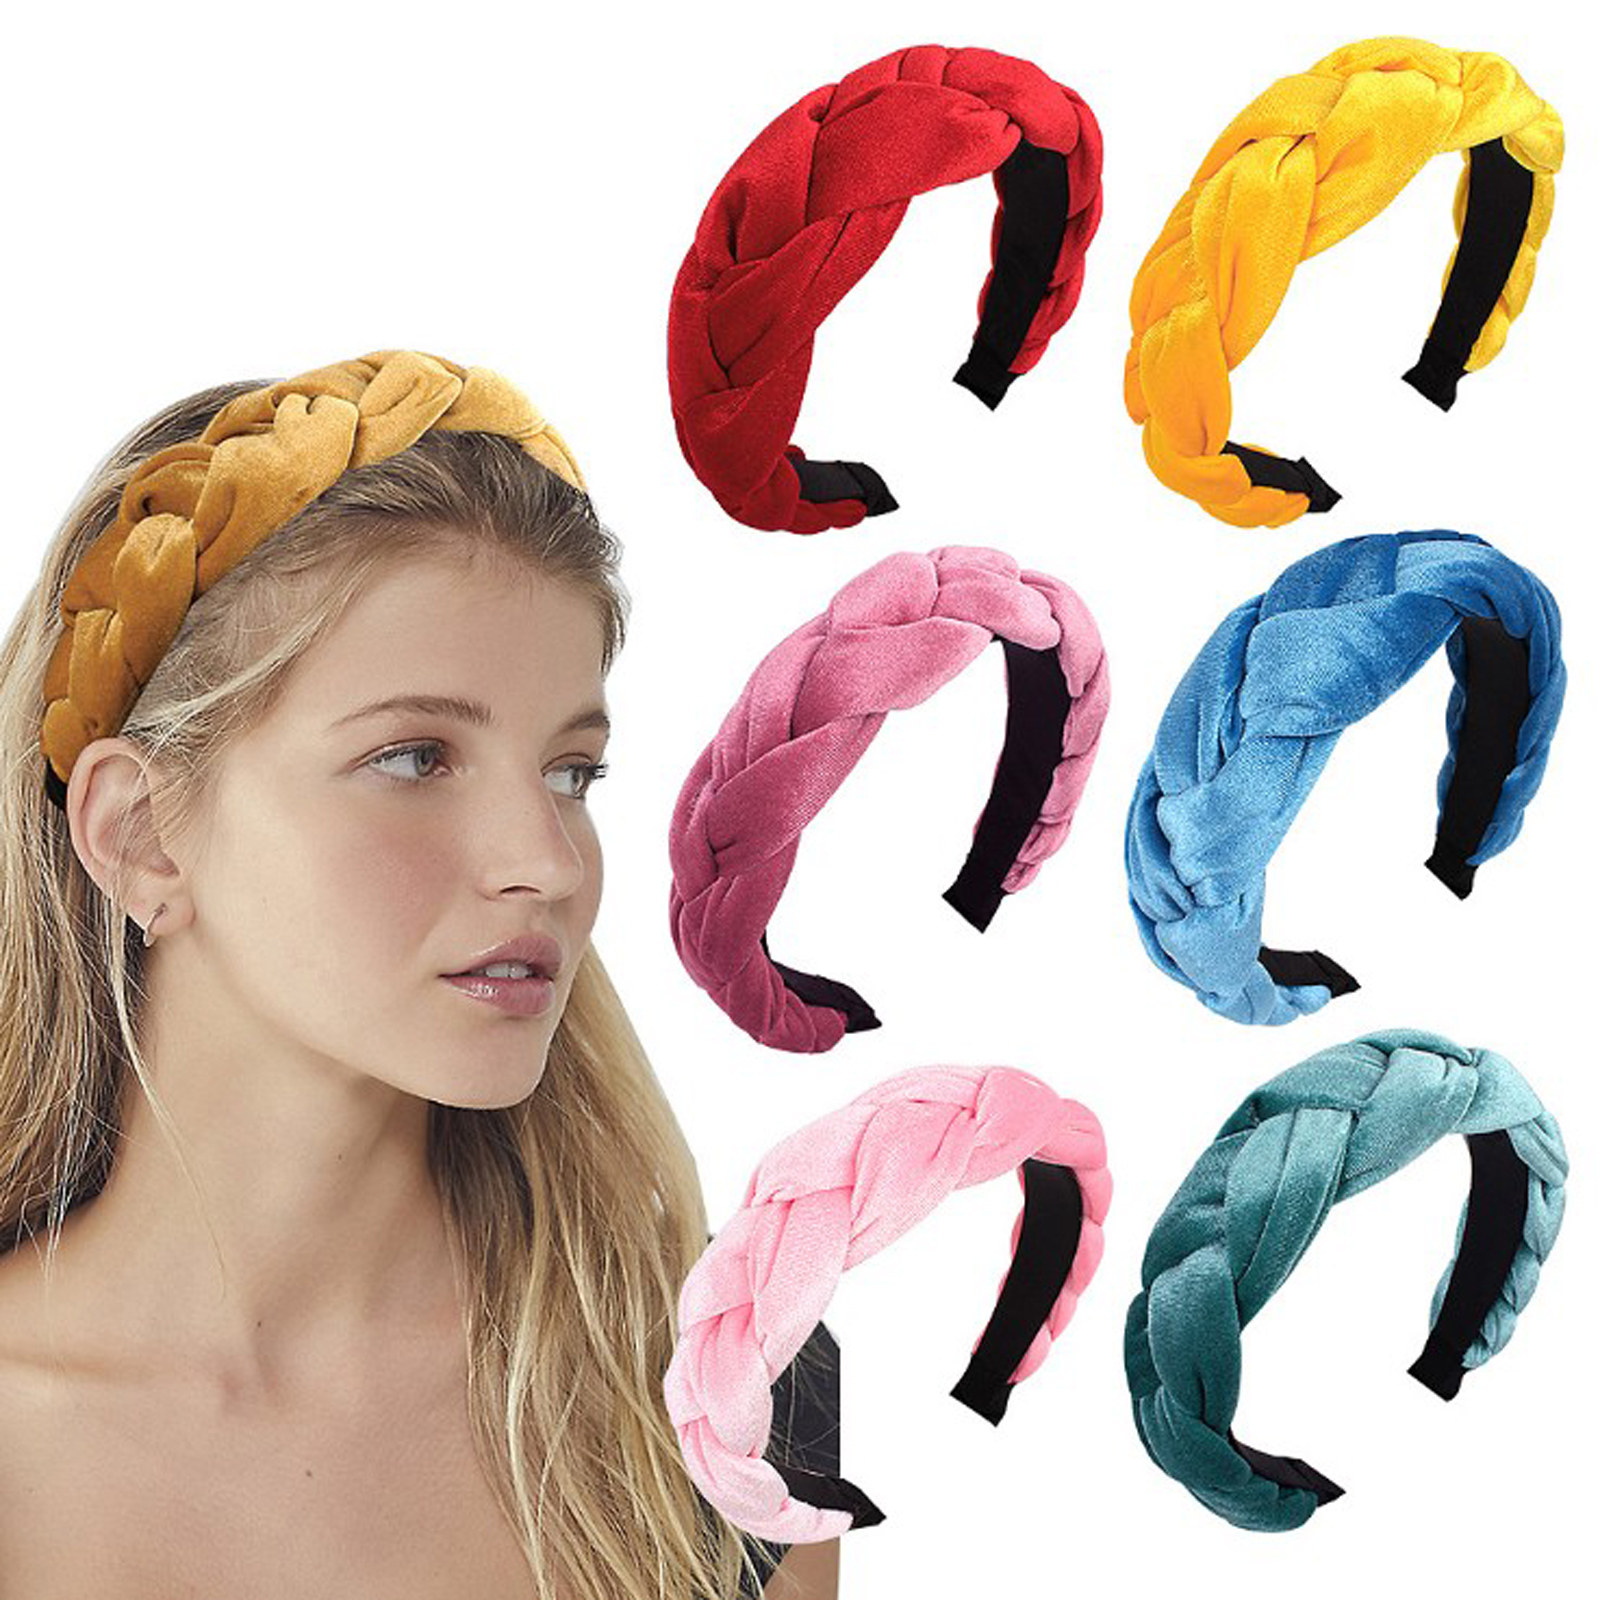 New Fashion Women Hairband Flannel Headband Cross Knot Headwear Solid Braid Hair Band Wide Side Hair Accessories Wholesale